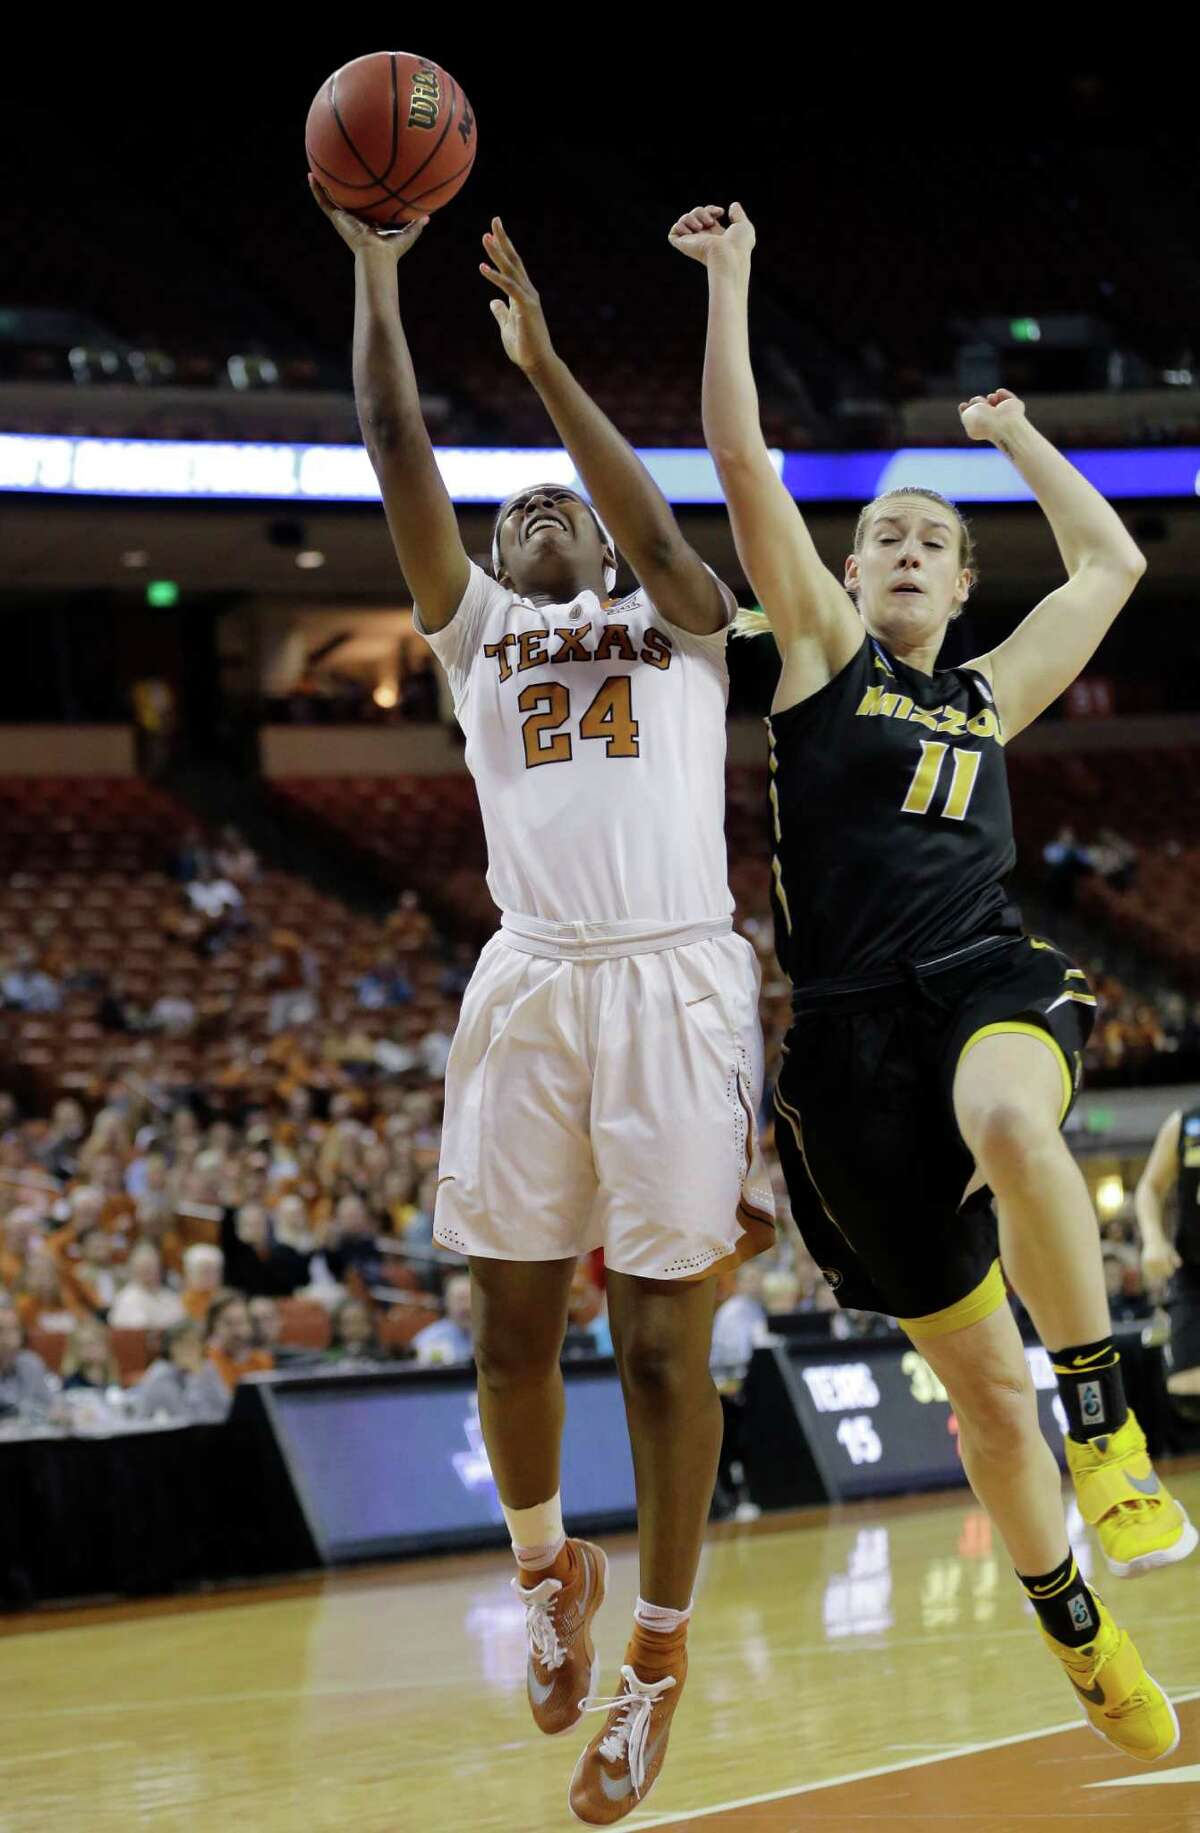 Texas' Ariel Atkins goes to the basket against Missouri's Lindsey Cunningham during the second-seeded Longhorns' second-round victory.